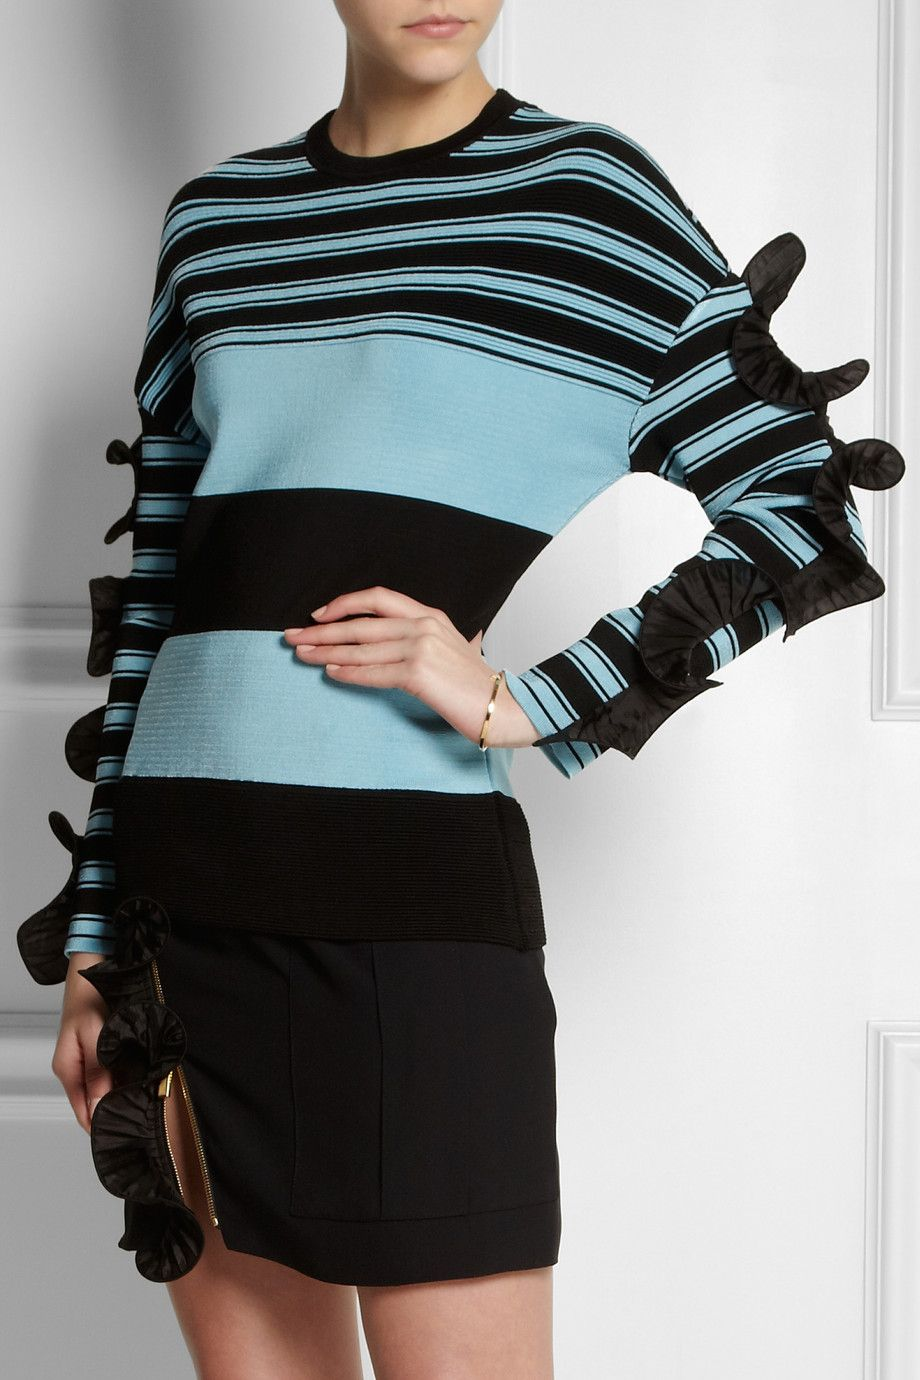 Emanuel Ungaro | Ruffle-trimmed striped ribbed-knit sweater